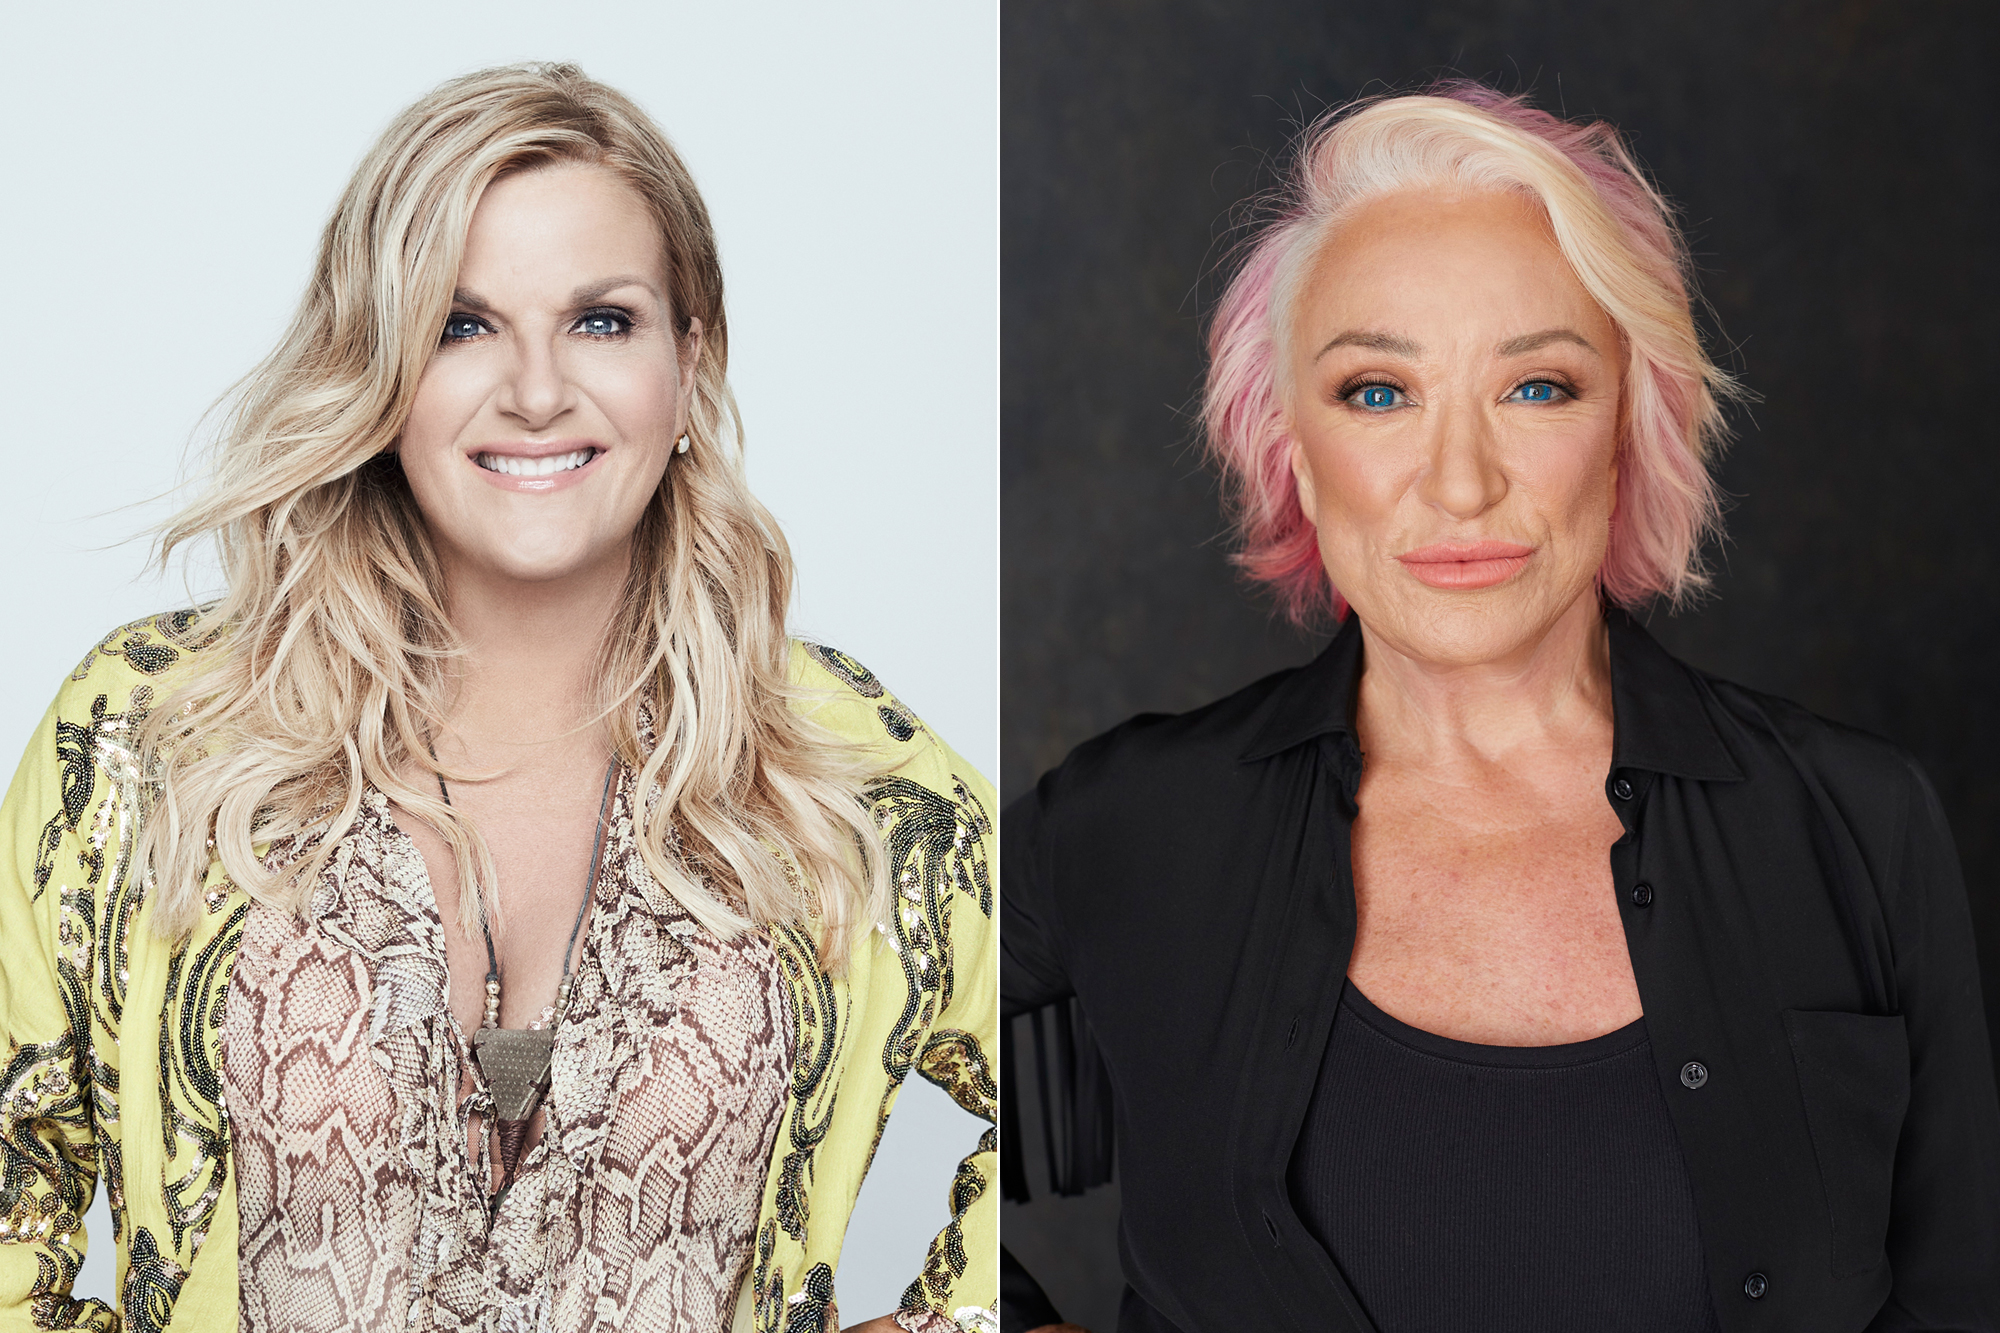 10 Best Country Songs to Hear Now: Tanya Tucker, Trisha Yearwood